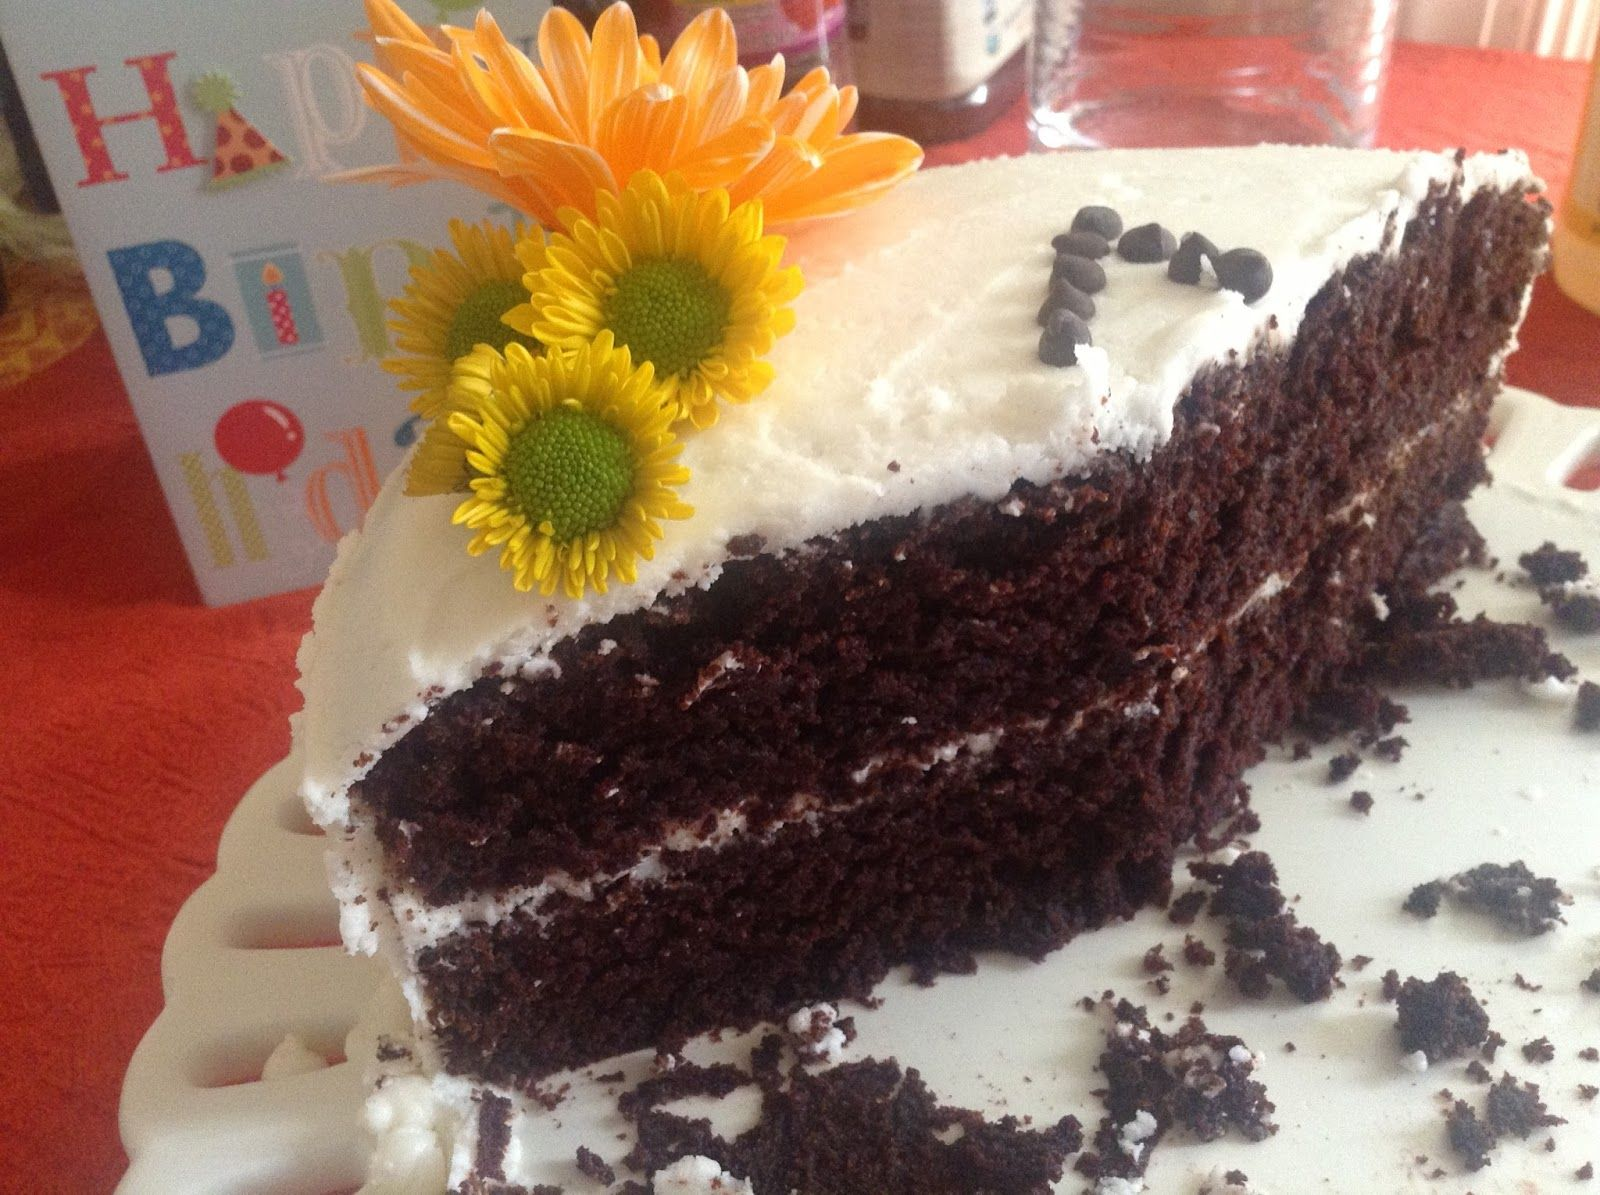 First Birthday Party Chocolate Cake Free of Top 8 Food Allergens